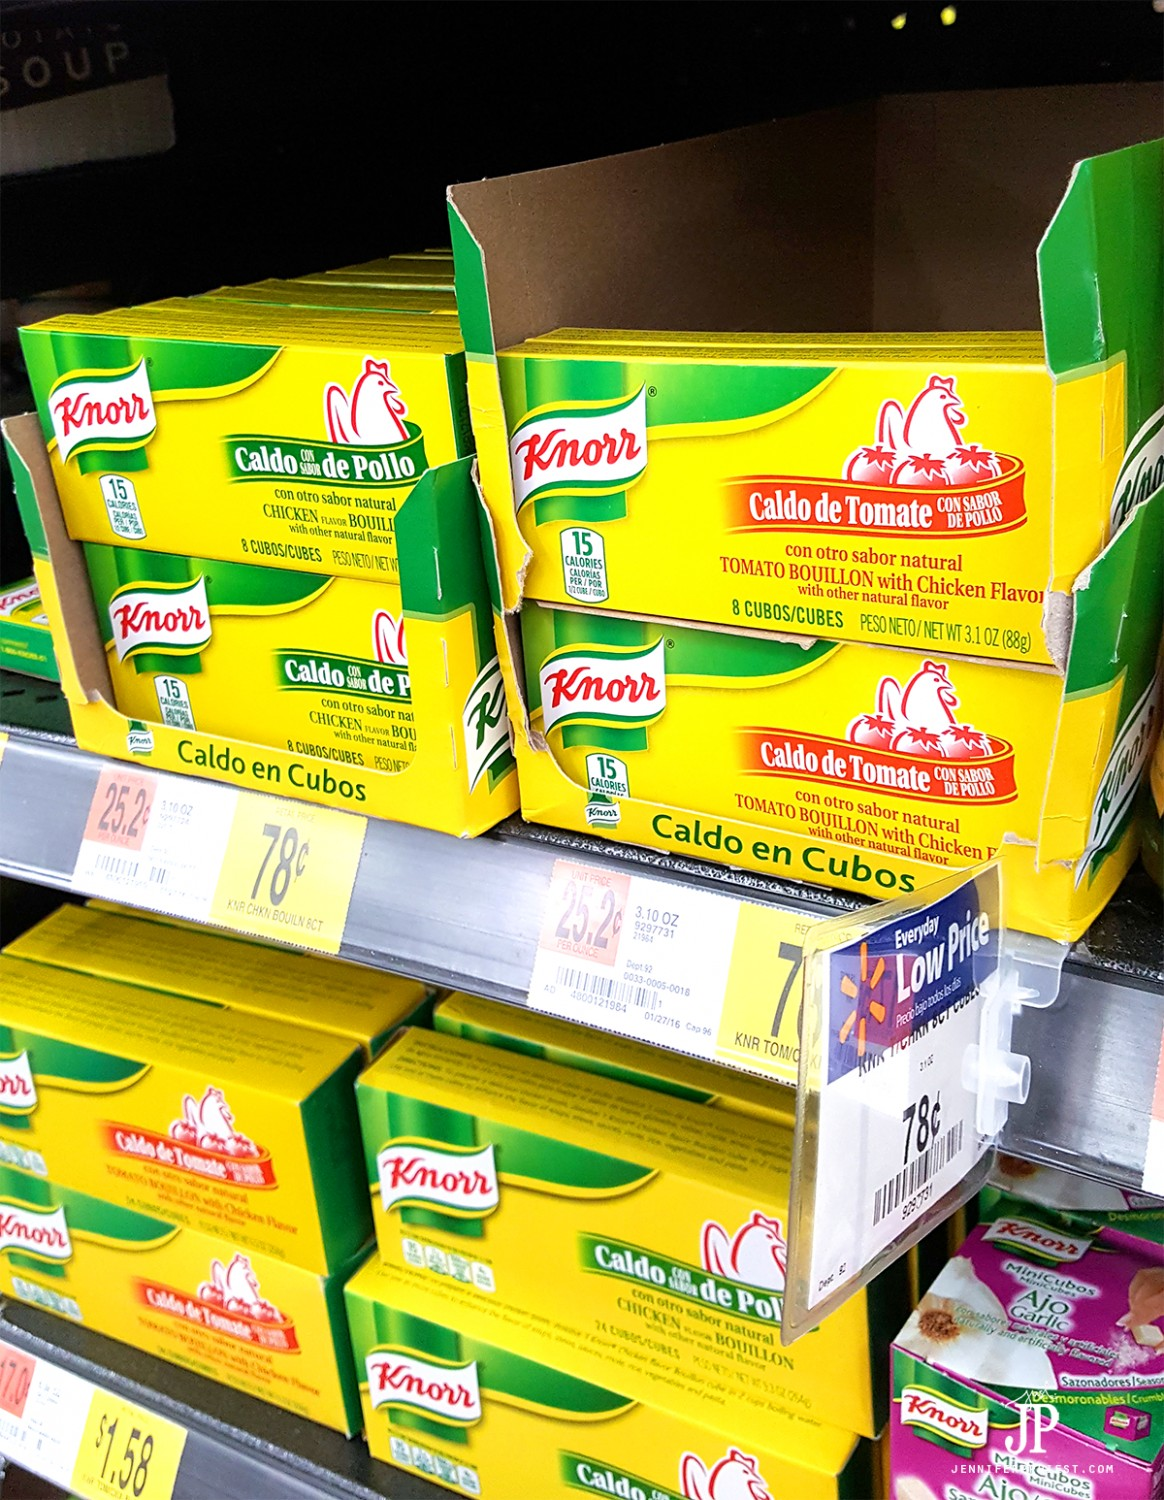 Get Knorr bouillon in Walmart and make your favorite mexican food dishes even more flavorful!